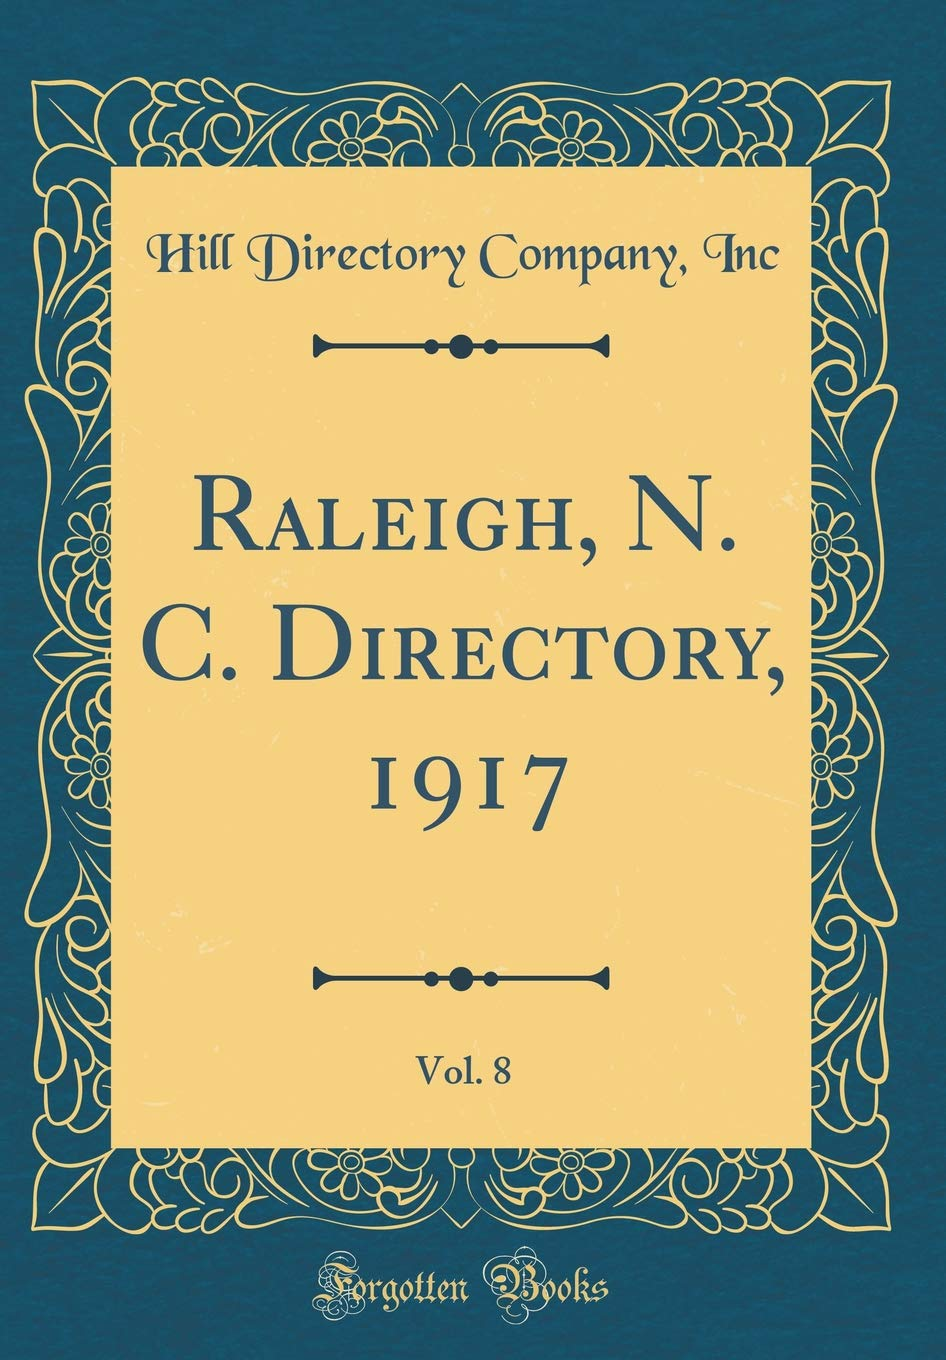 Raleigh, N. C. Directory, 1917, Vol. 8 (Classic Reprint) ebook